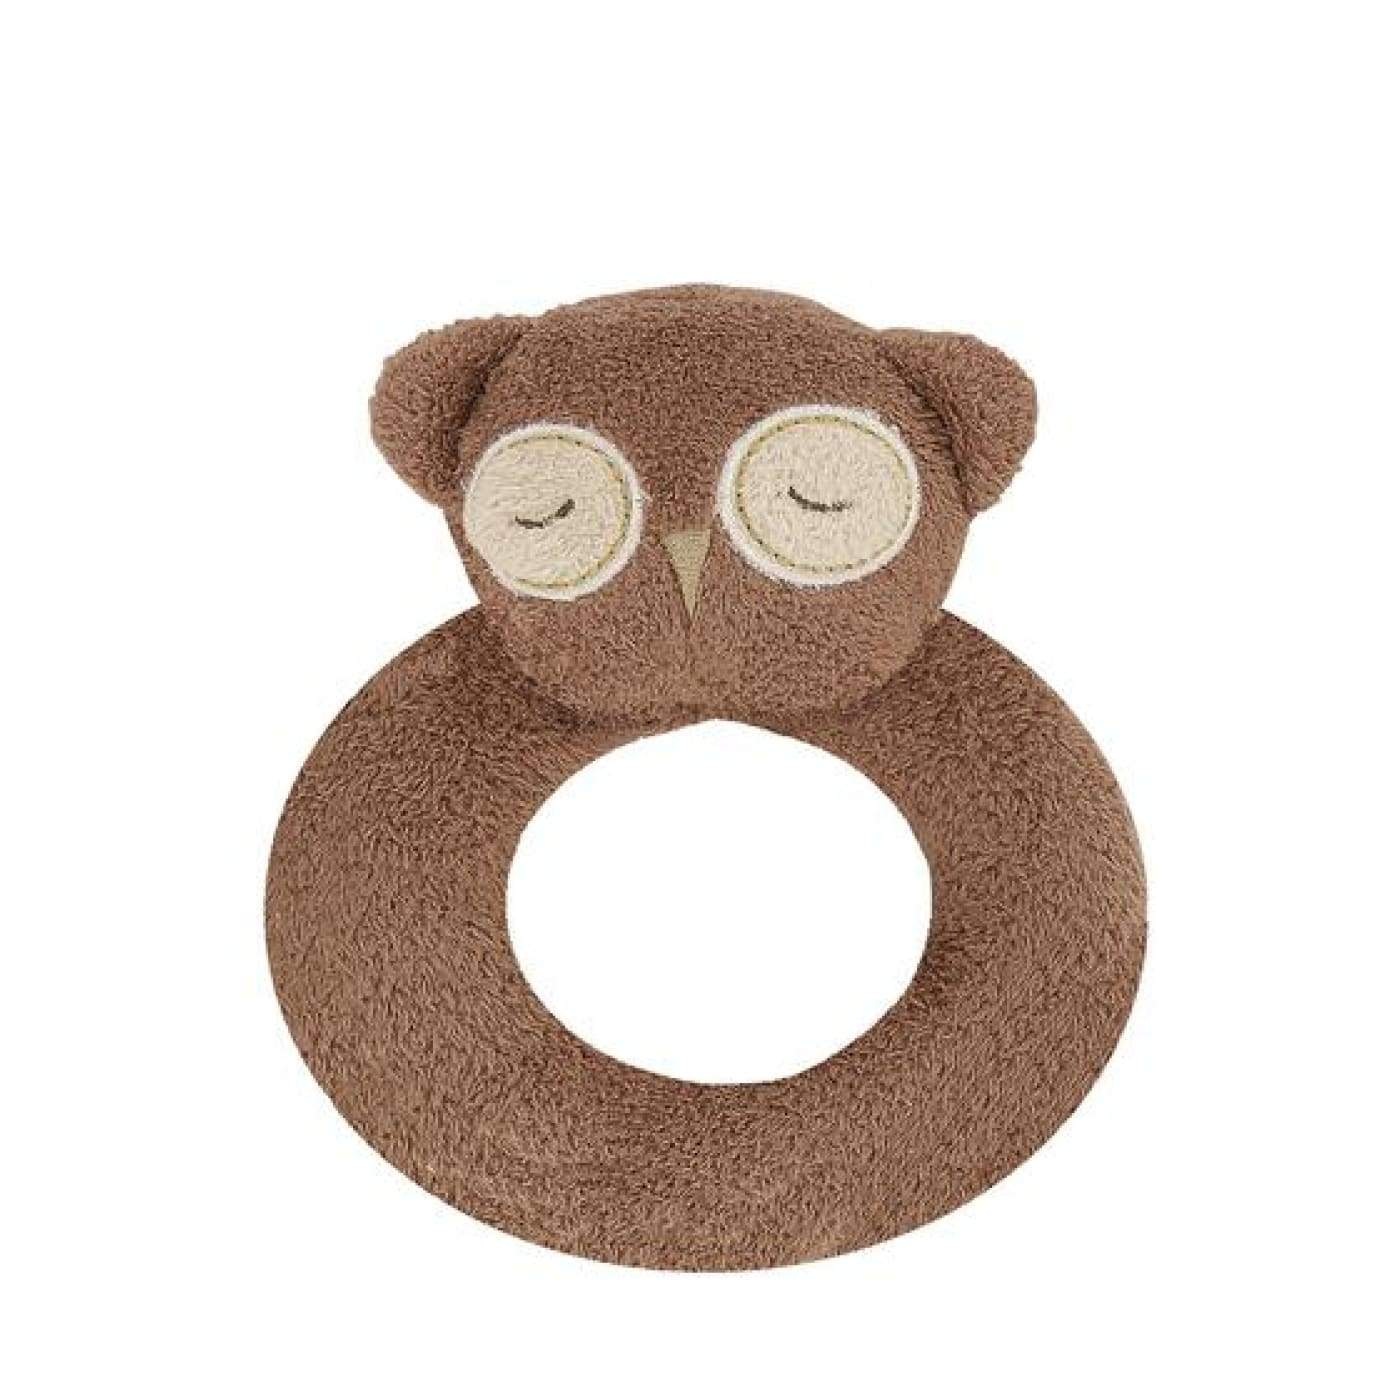 Angel Dear Ring Rattle - Brown Owl - TOYS & PLAY - BLANKIES/COMFORTERS/RATTLES